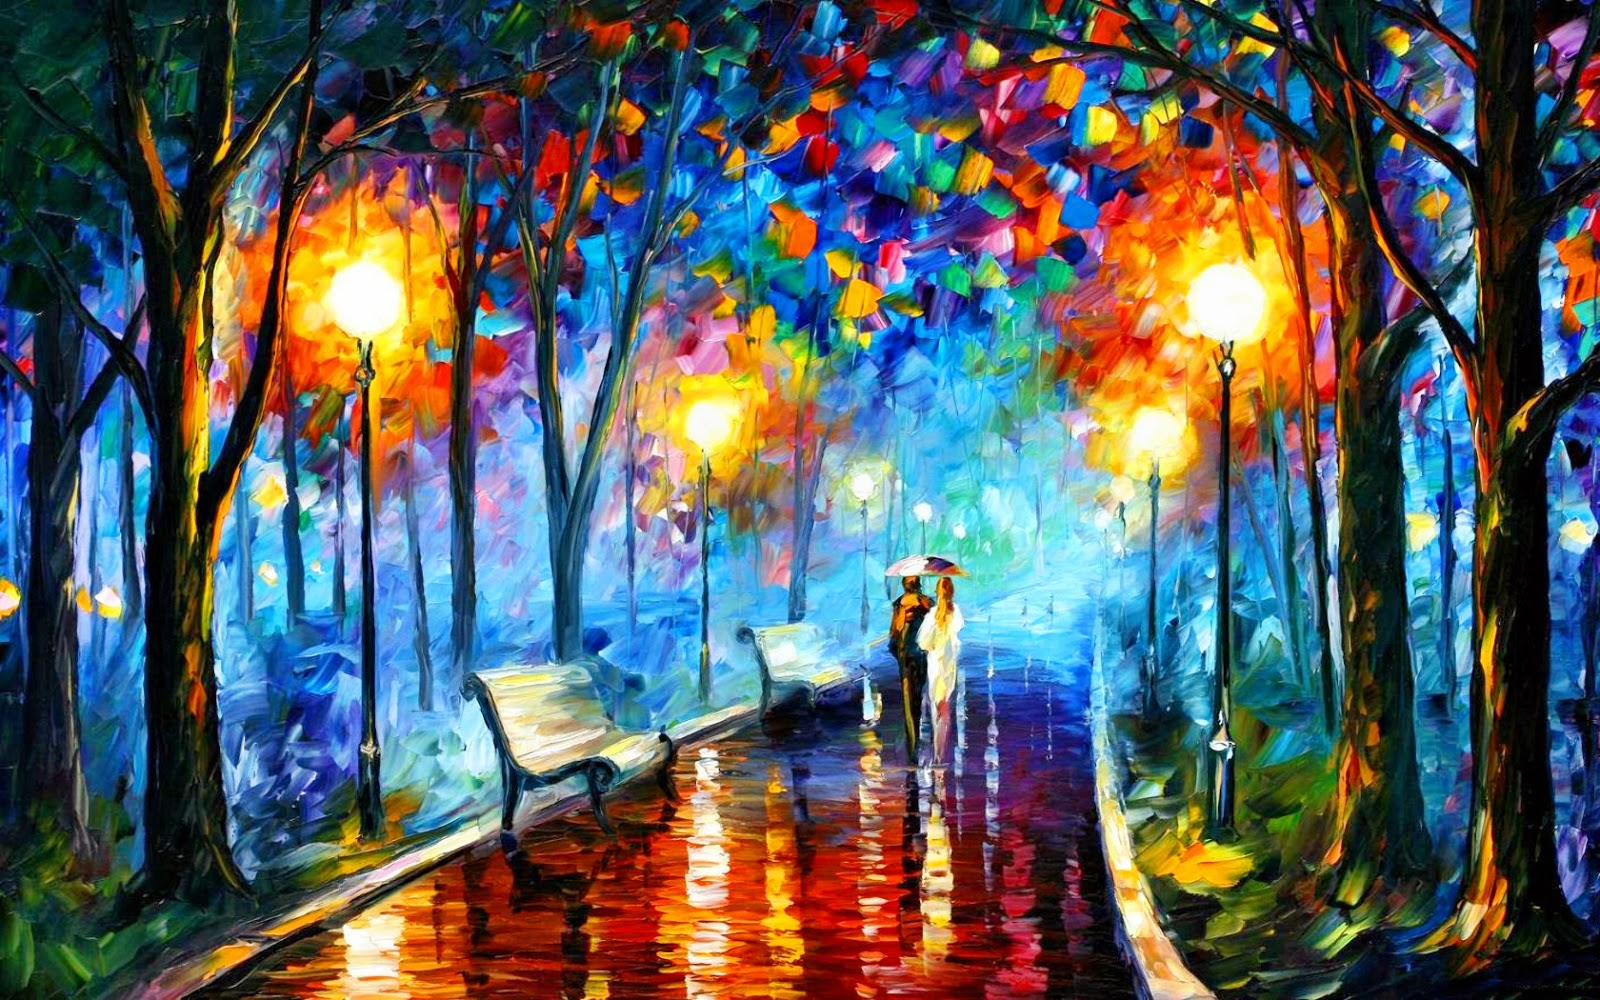 Lovers-walk-in-park-oil-painting-HD-image-stock-photo.jpg